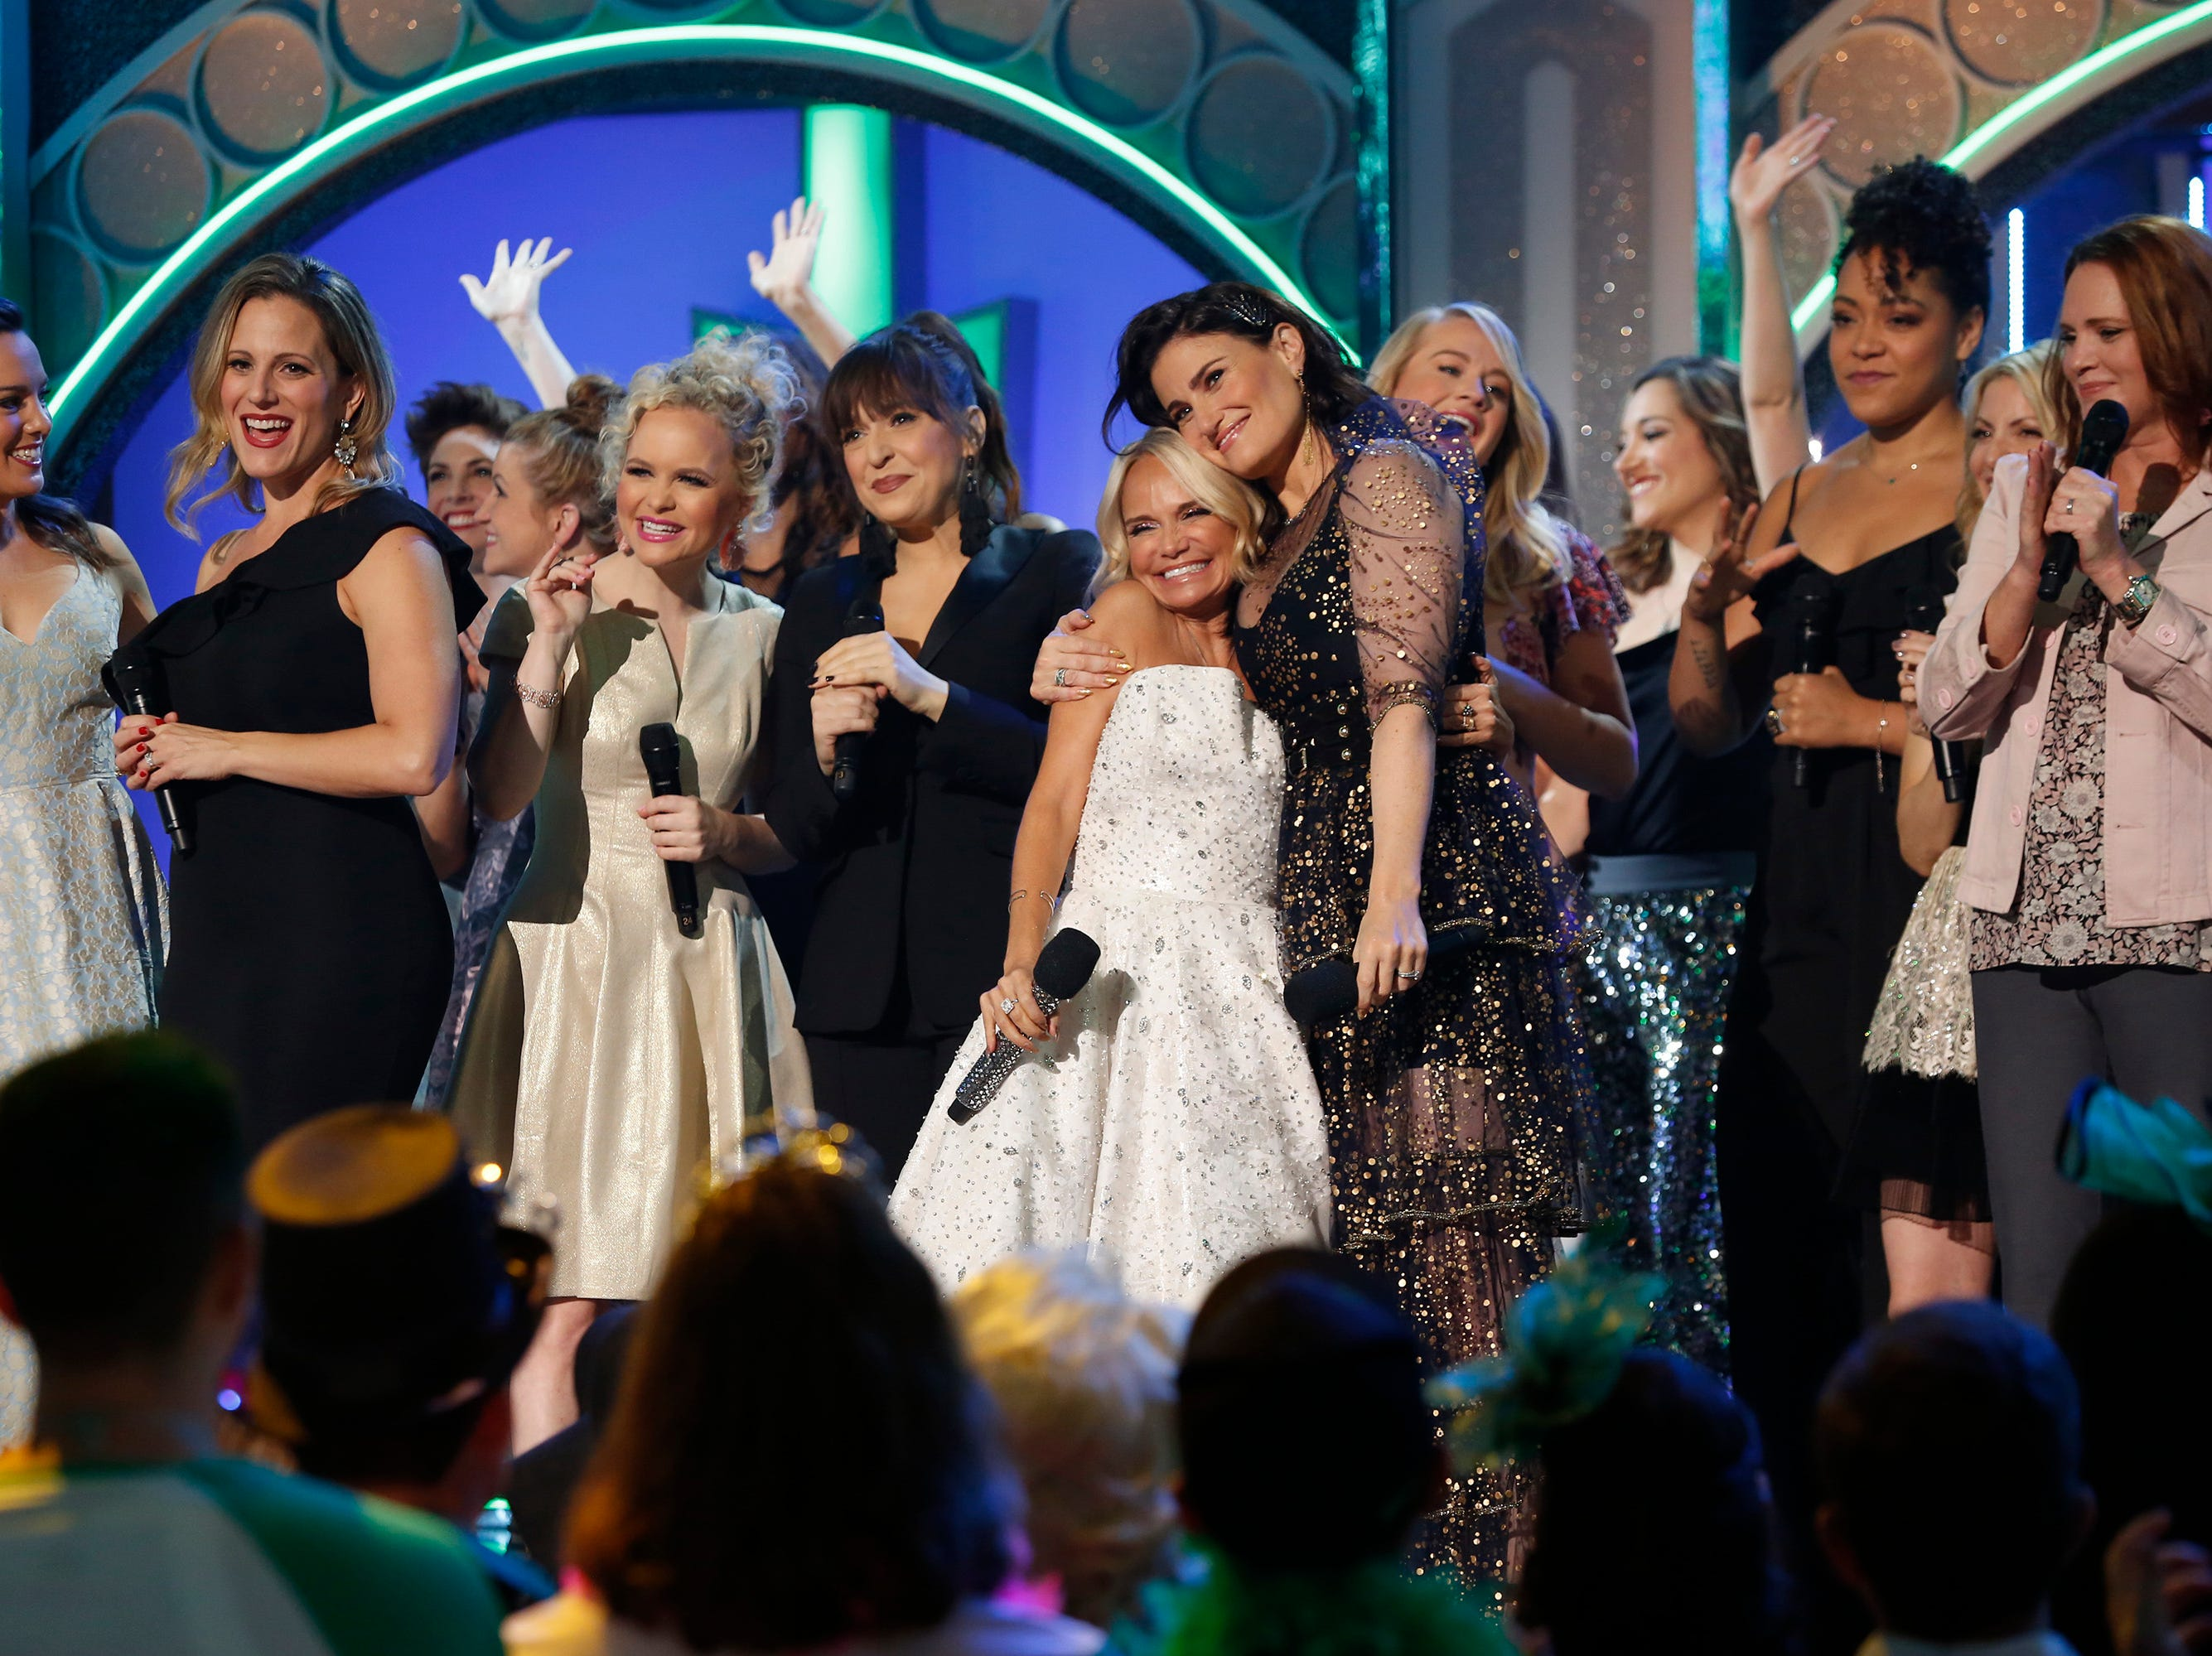 "This image released by NBC shows Kristin Chenoweth, center left, embracing Idina Menzel from the Halloween-themed TV special ""A Very Wicked Halloween: Celebrating 15 Years On Broadway,"" airing on NBC on Oct. 29 at 10pm ET. Chenoweth and Menzel were original stars of the Broadway production. (Eric Liebowitz/NBC via AP) ORG XMIT: NYET301"